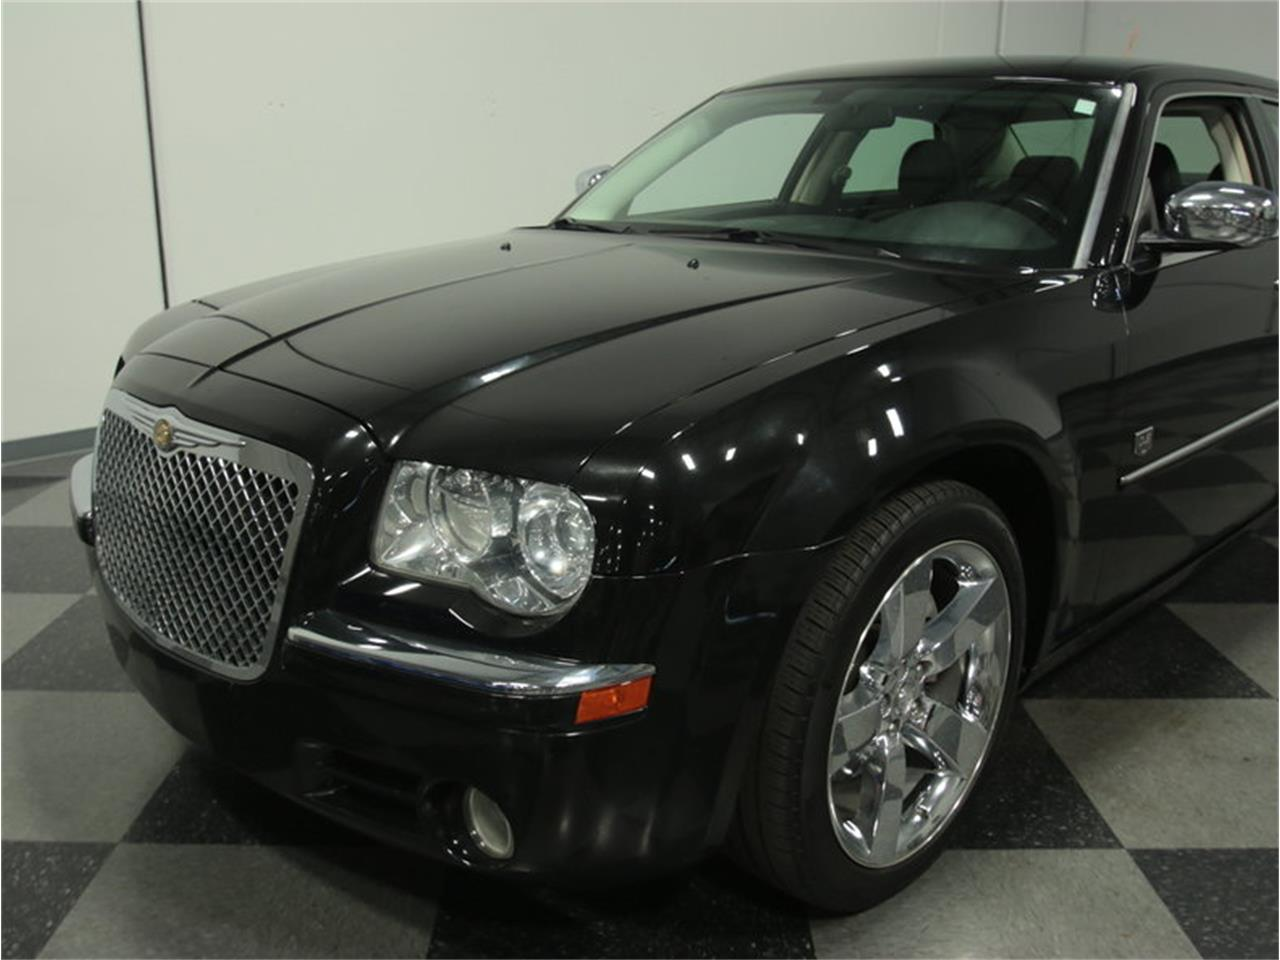 2008 chrysler touring edition dub lithia springs georgia classic cc classiccars financing inspection insurance transport